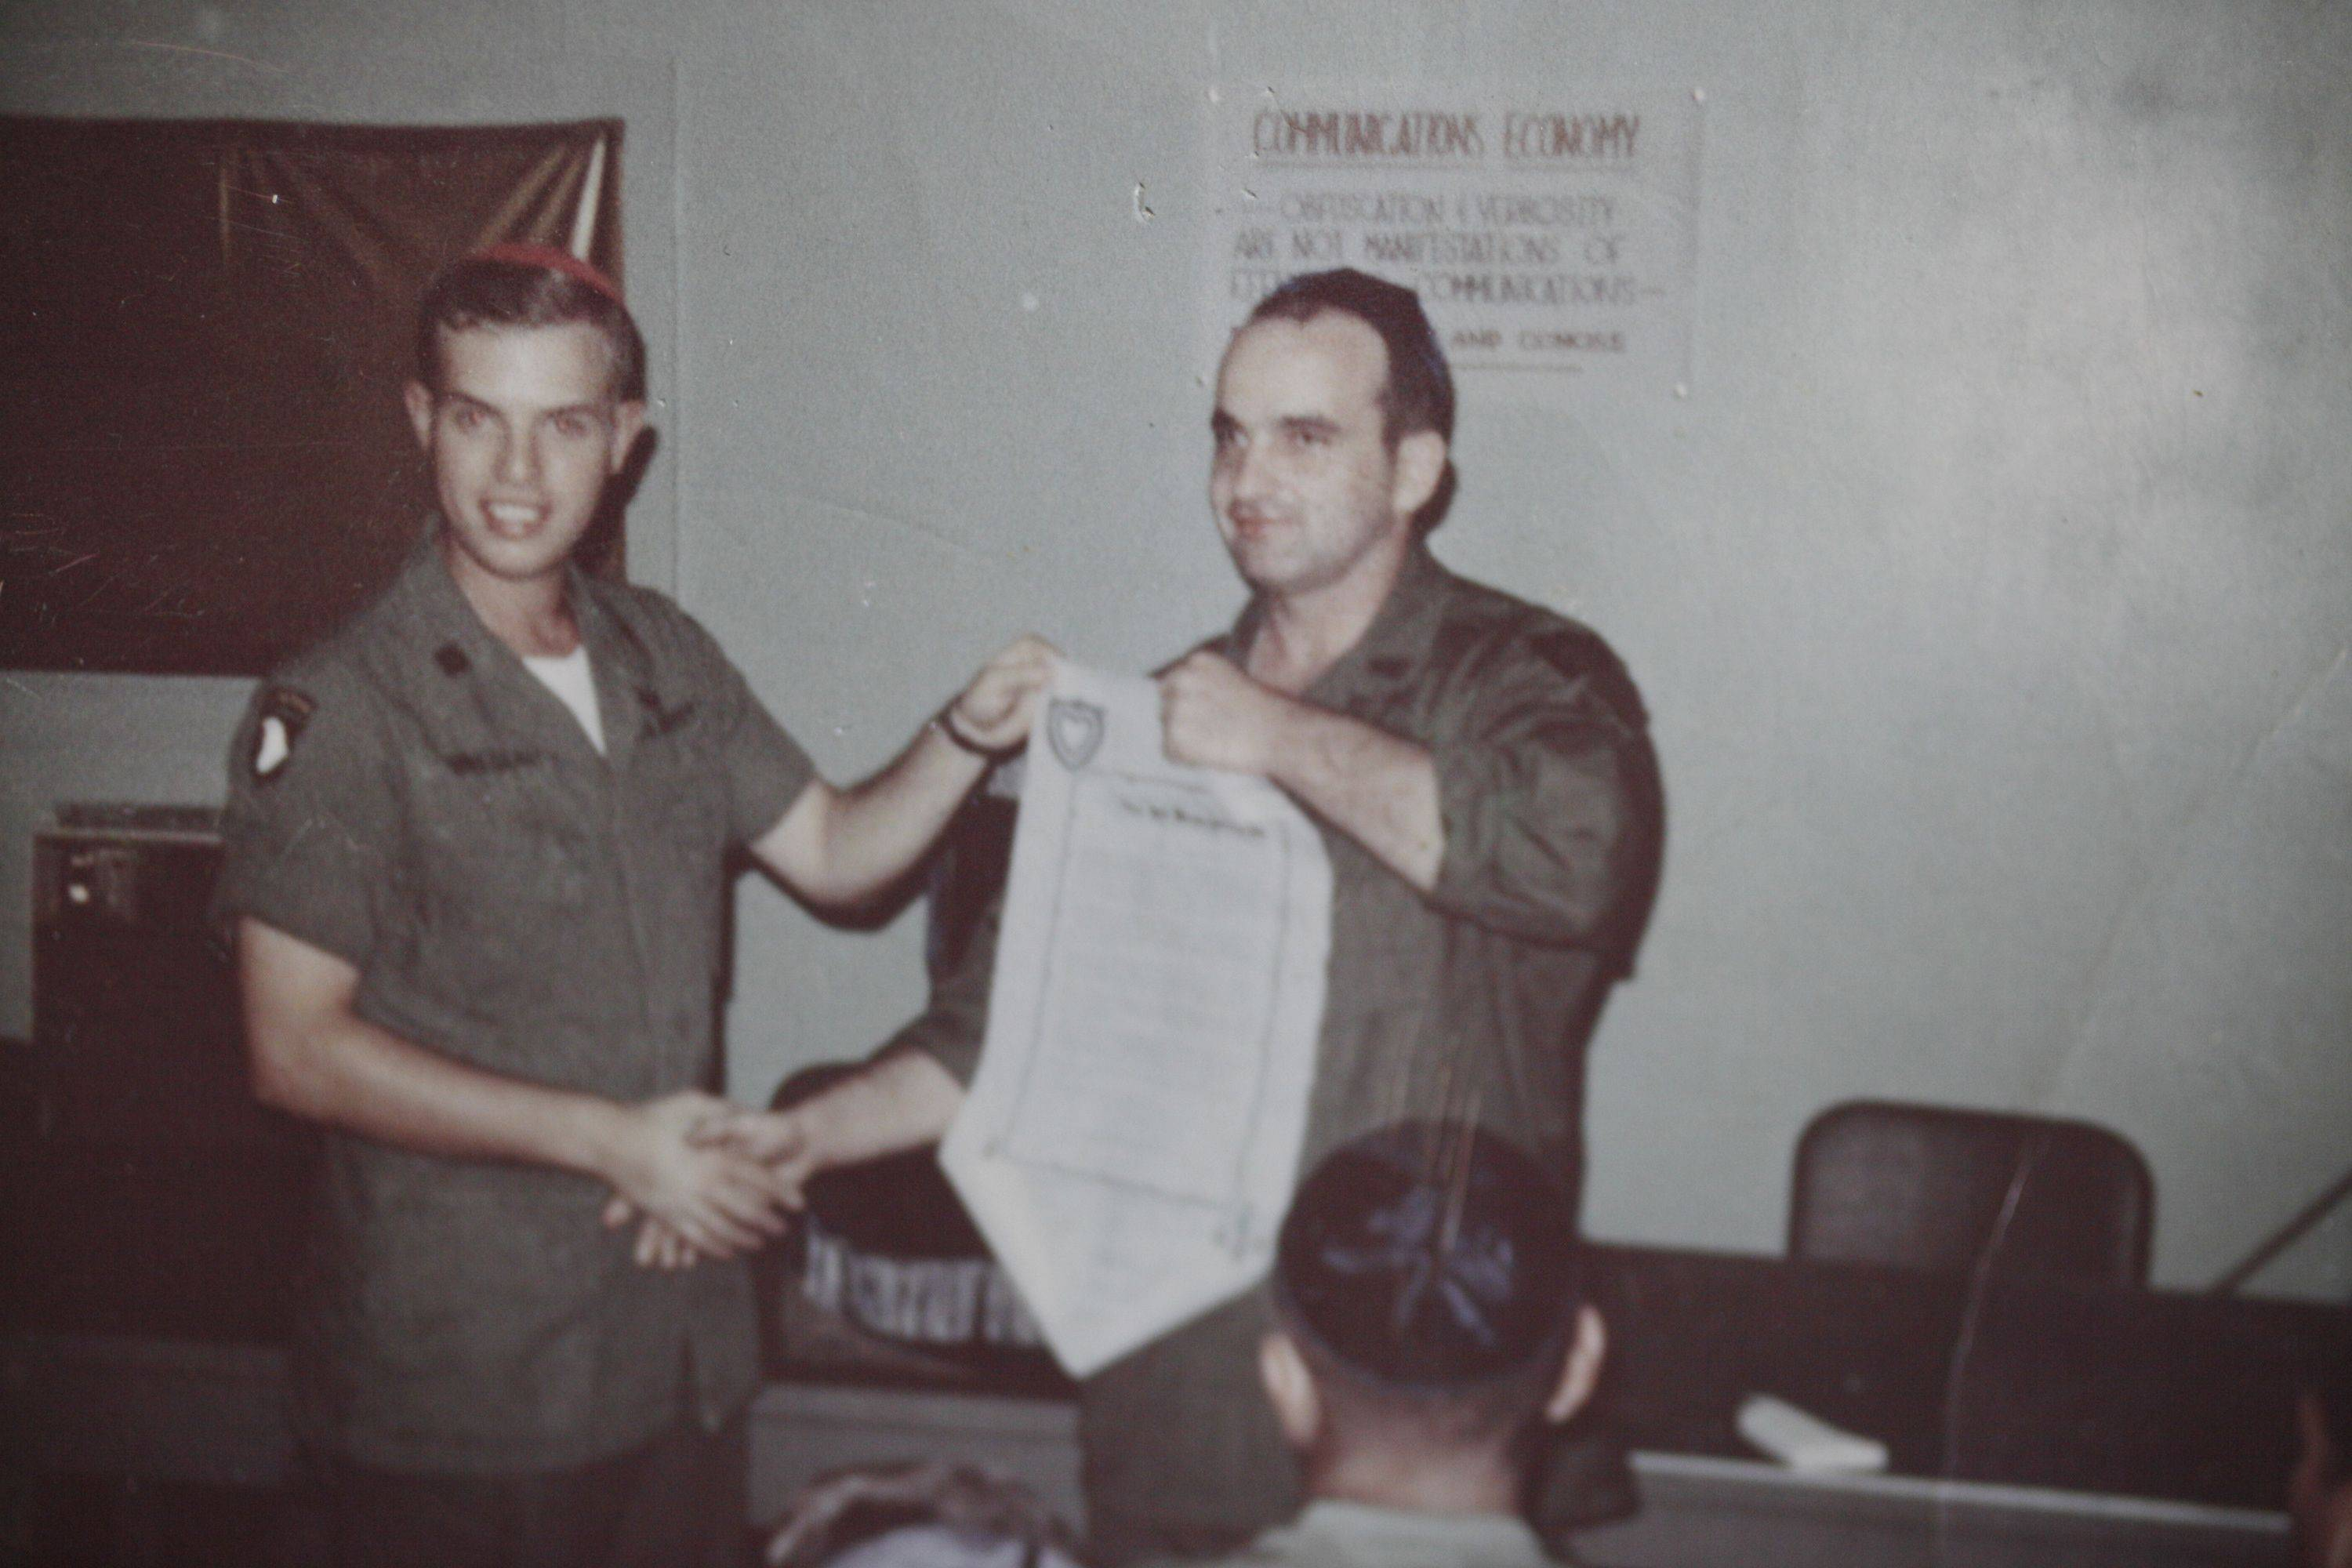 jewish singles in fort sill Sufficient single soldier quarters exist on fort sill to meet the installations needs all single soldier quarters have been renovated exceptional family member housing at fort sill, every one applying for housing on post falls under the same priority.